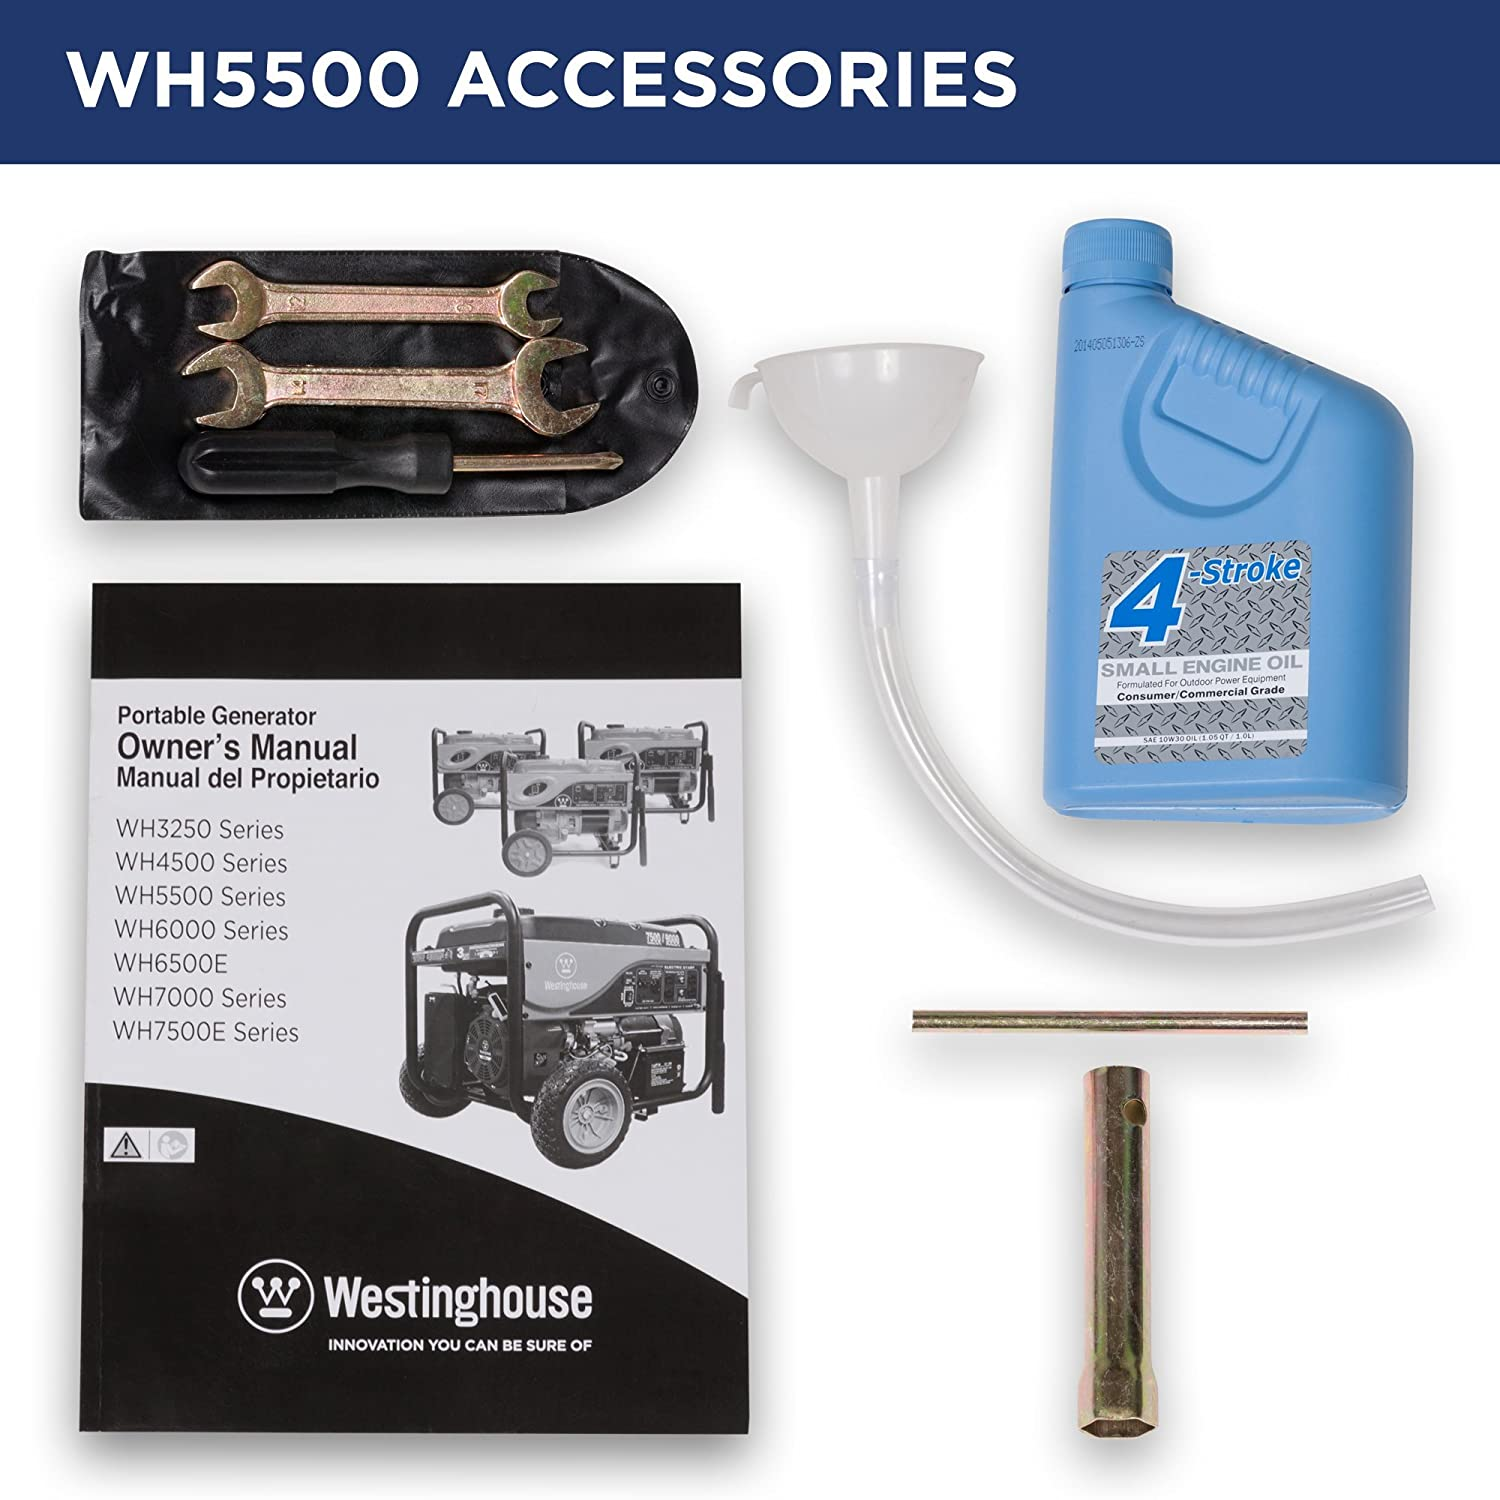 WH5500 Camping Generator Accessories